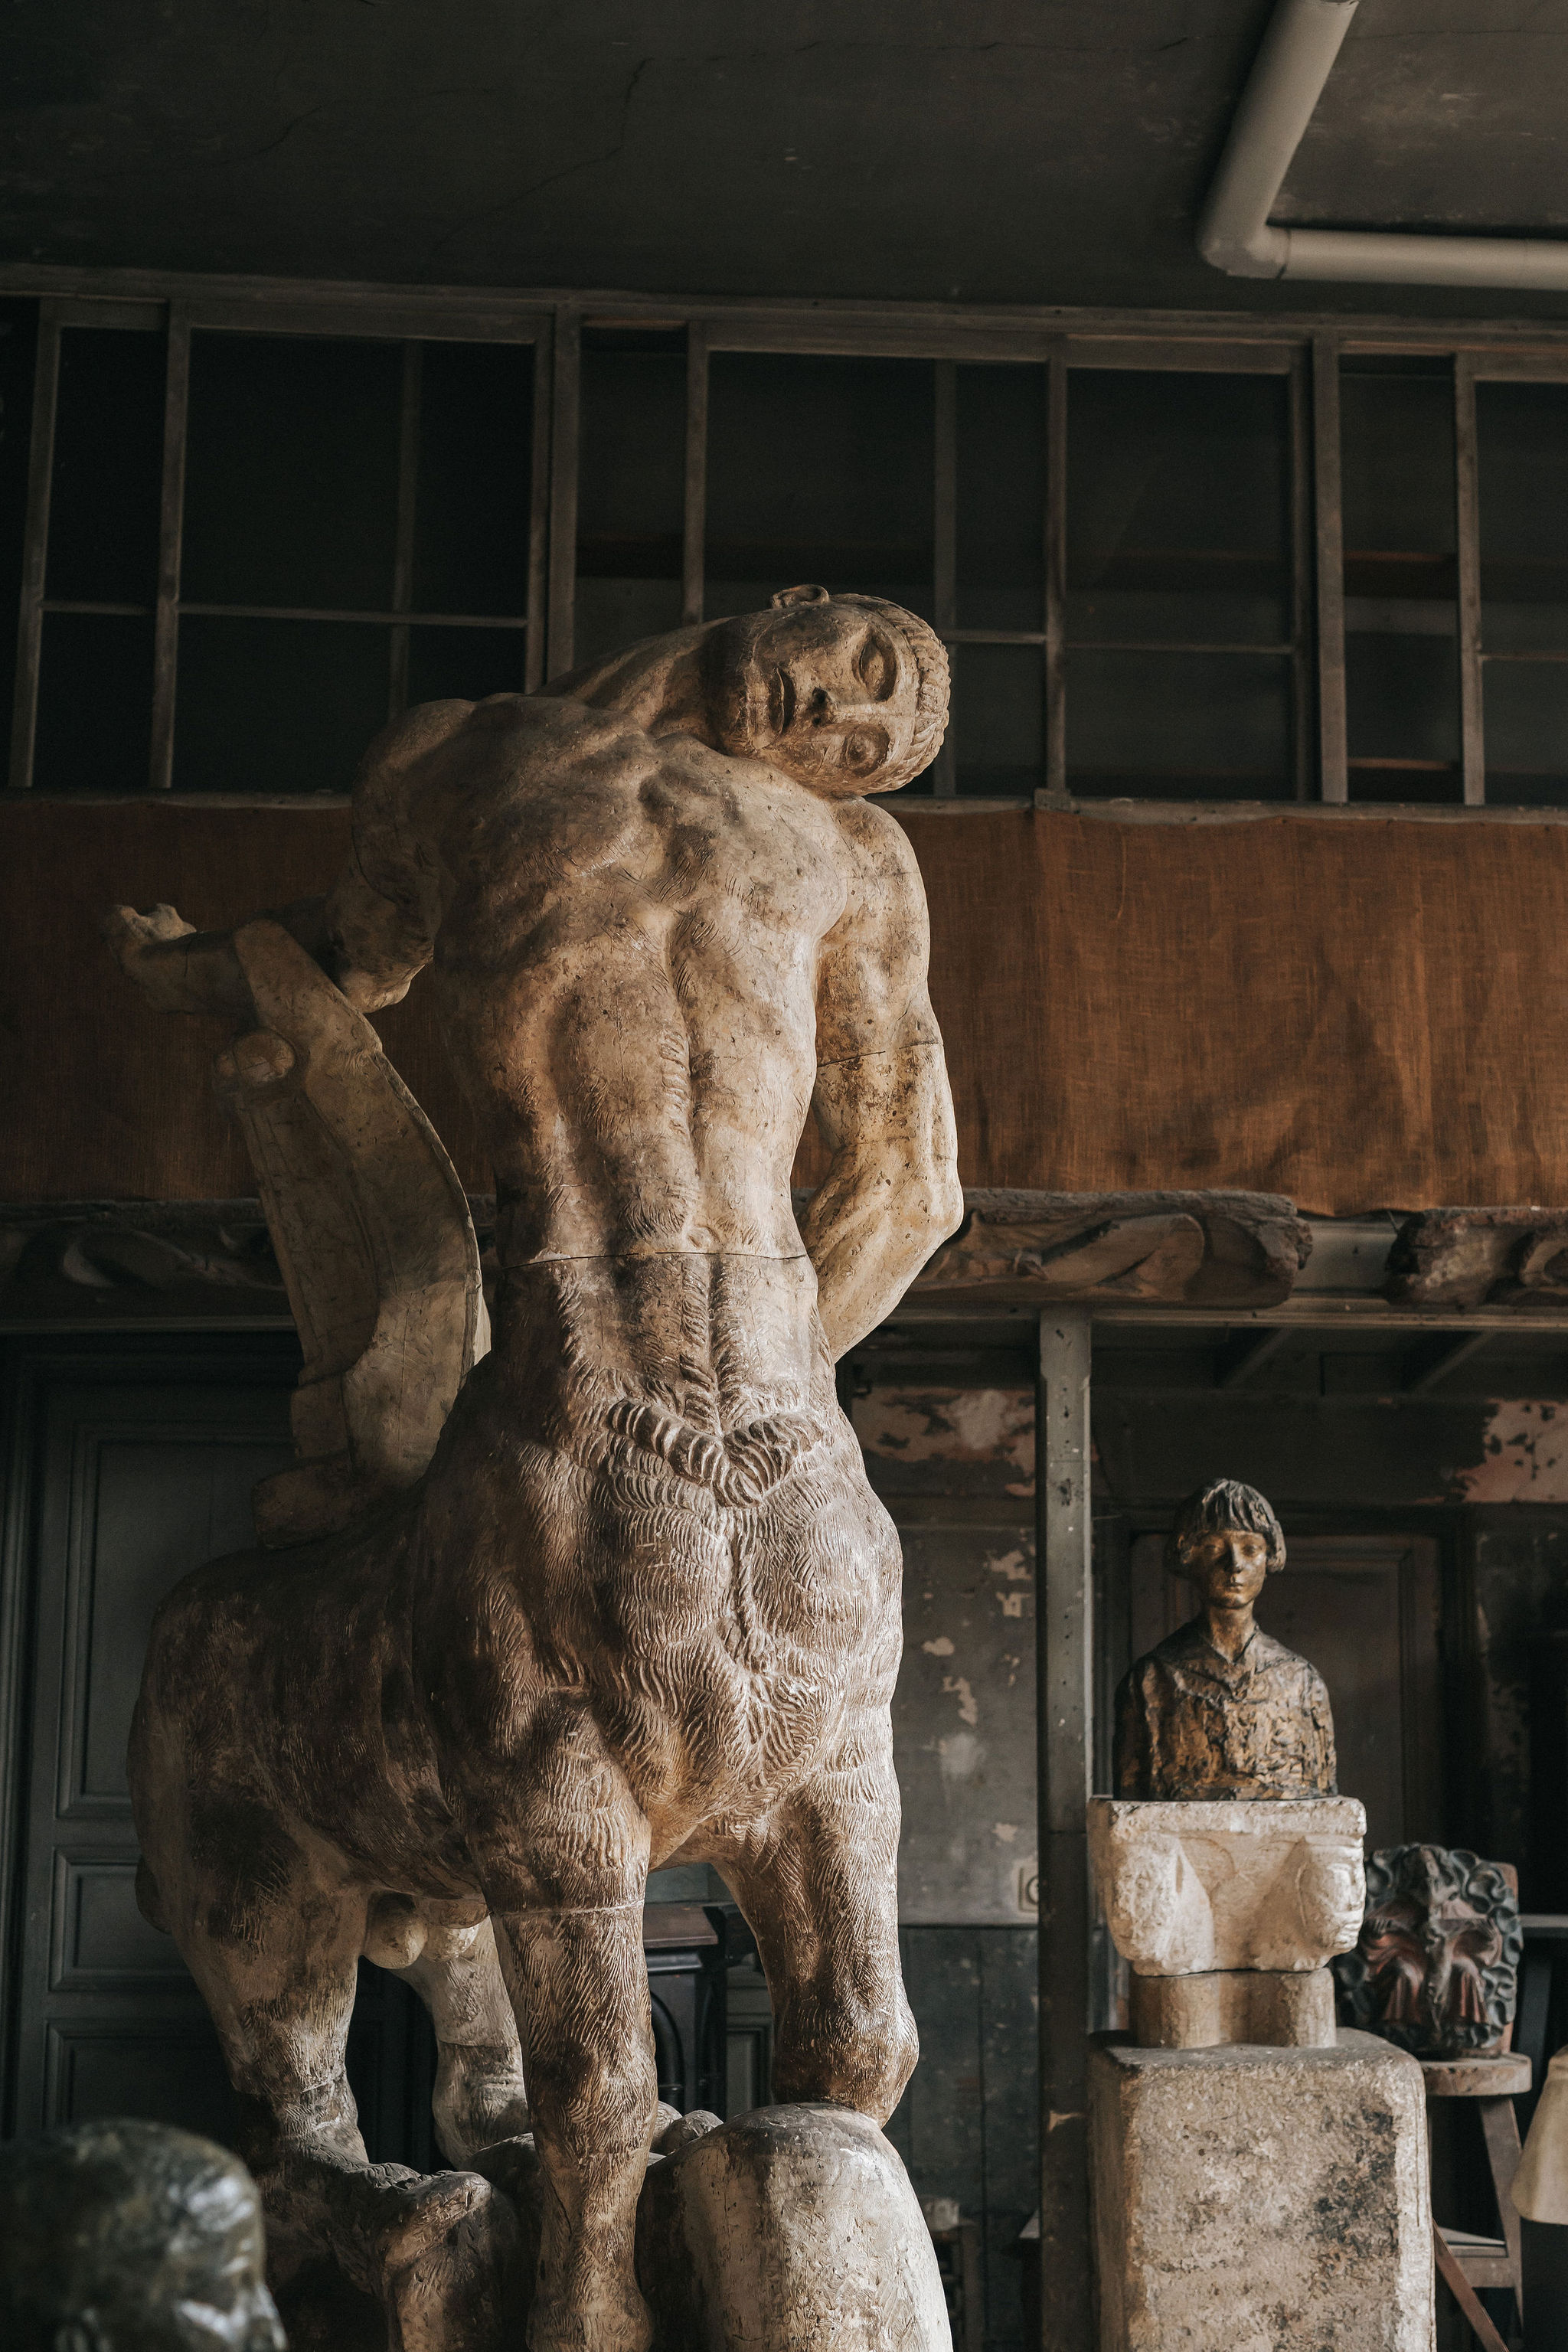 musee bourdelle paris museum by photographer iheartparisfr04.jpg